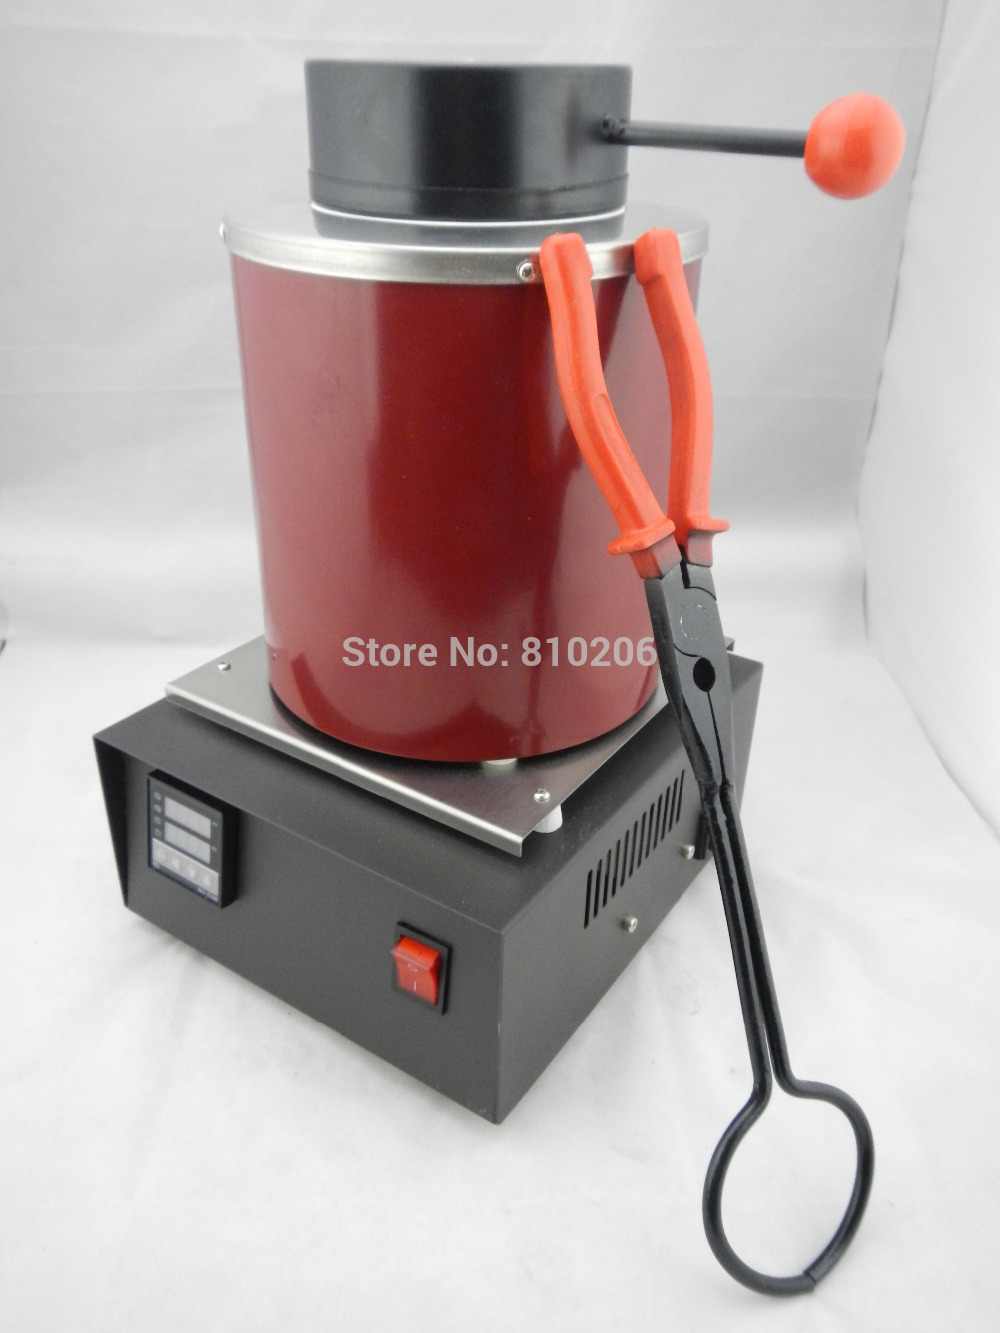 220 Voltage and 2KG Capacity Gold Electric Melting Furnaces with 1pc Graphite Crucible & Plier,Smelting furnace ...